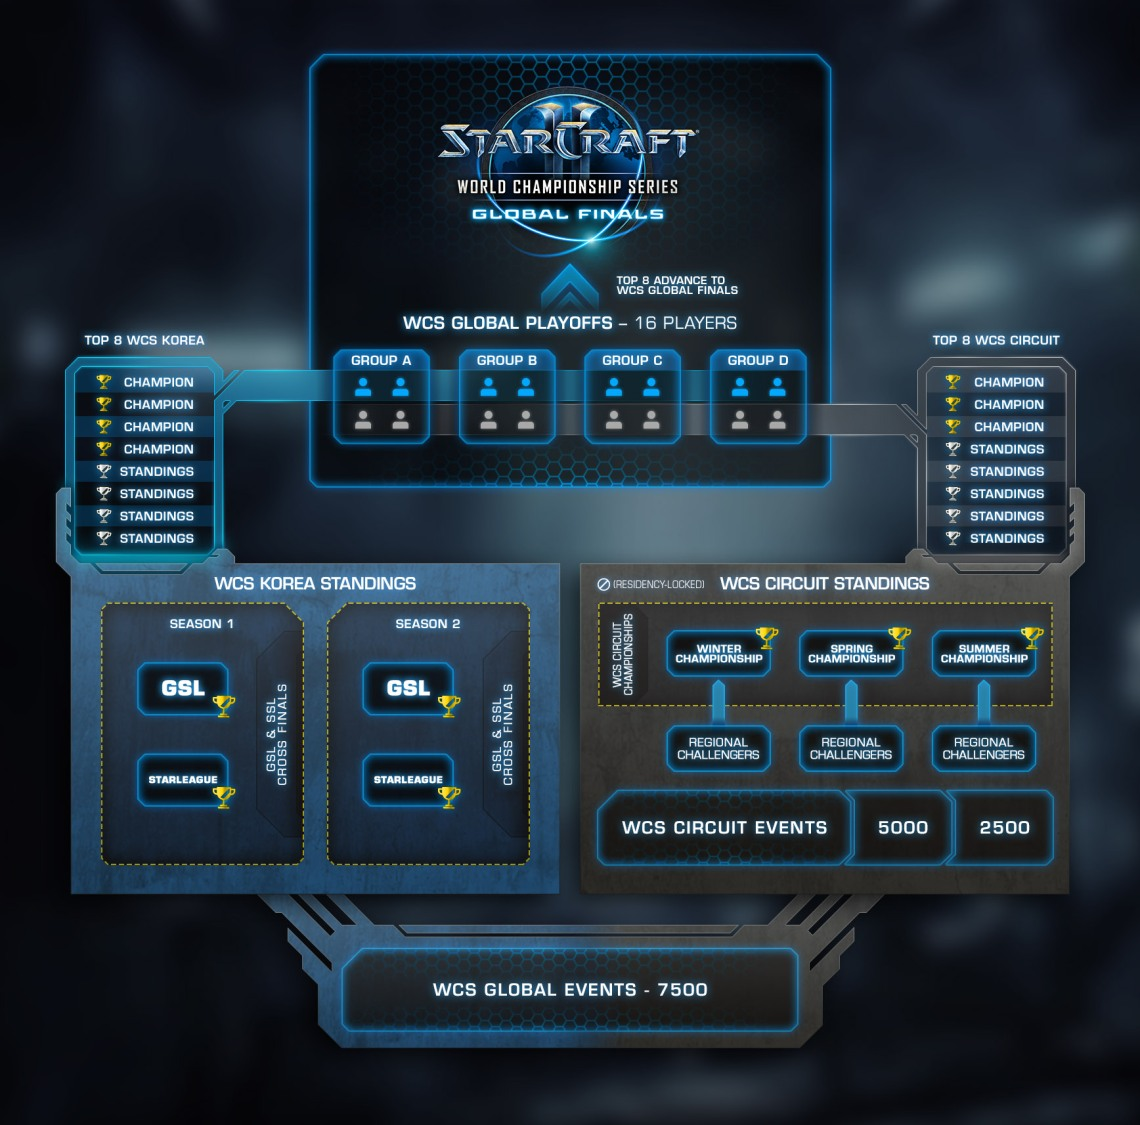 wcs_global-finals-playoffs_final_v2